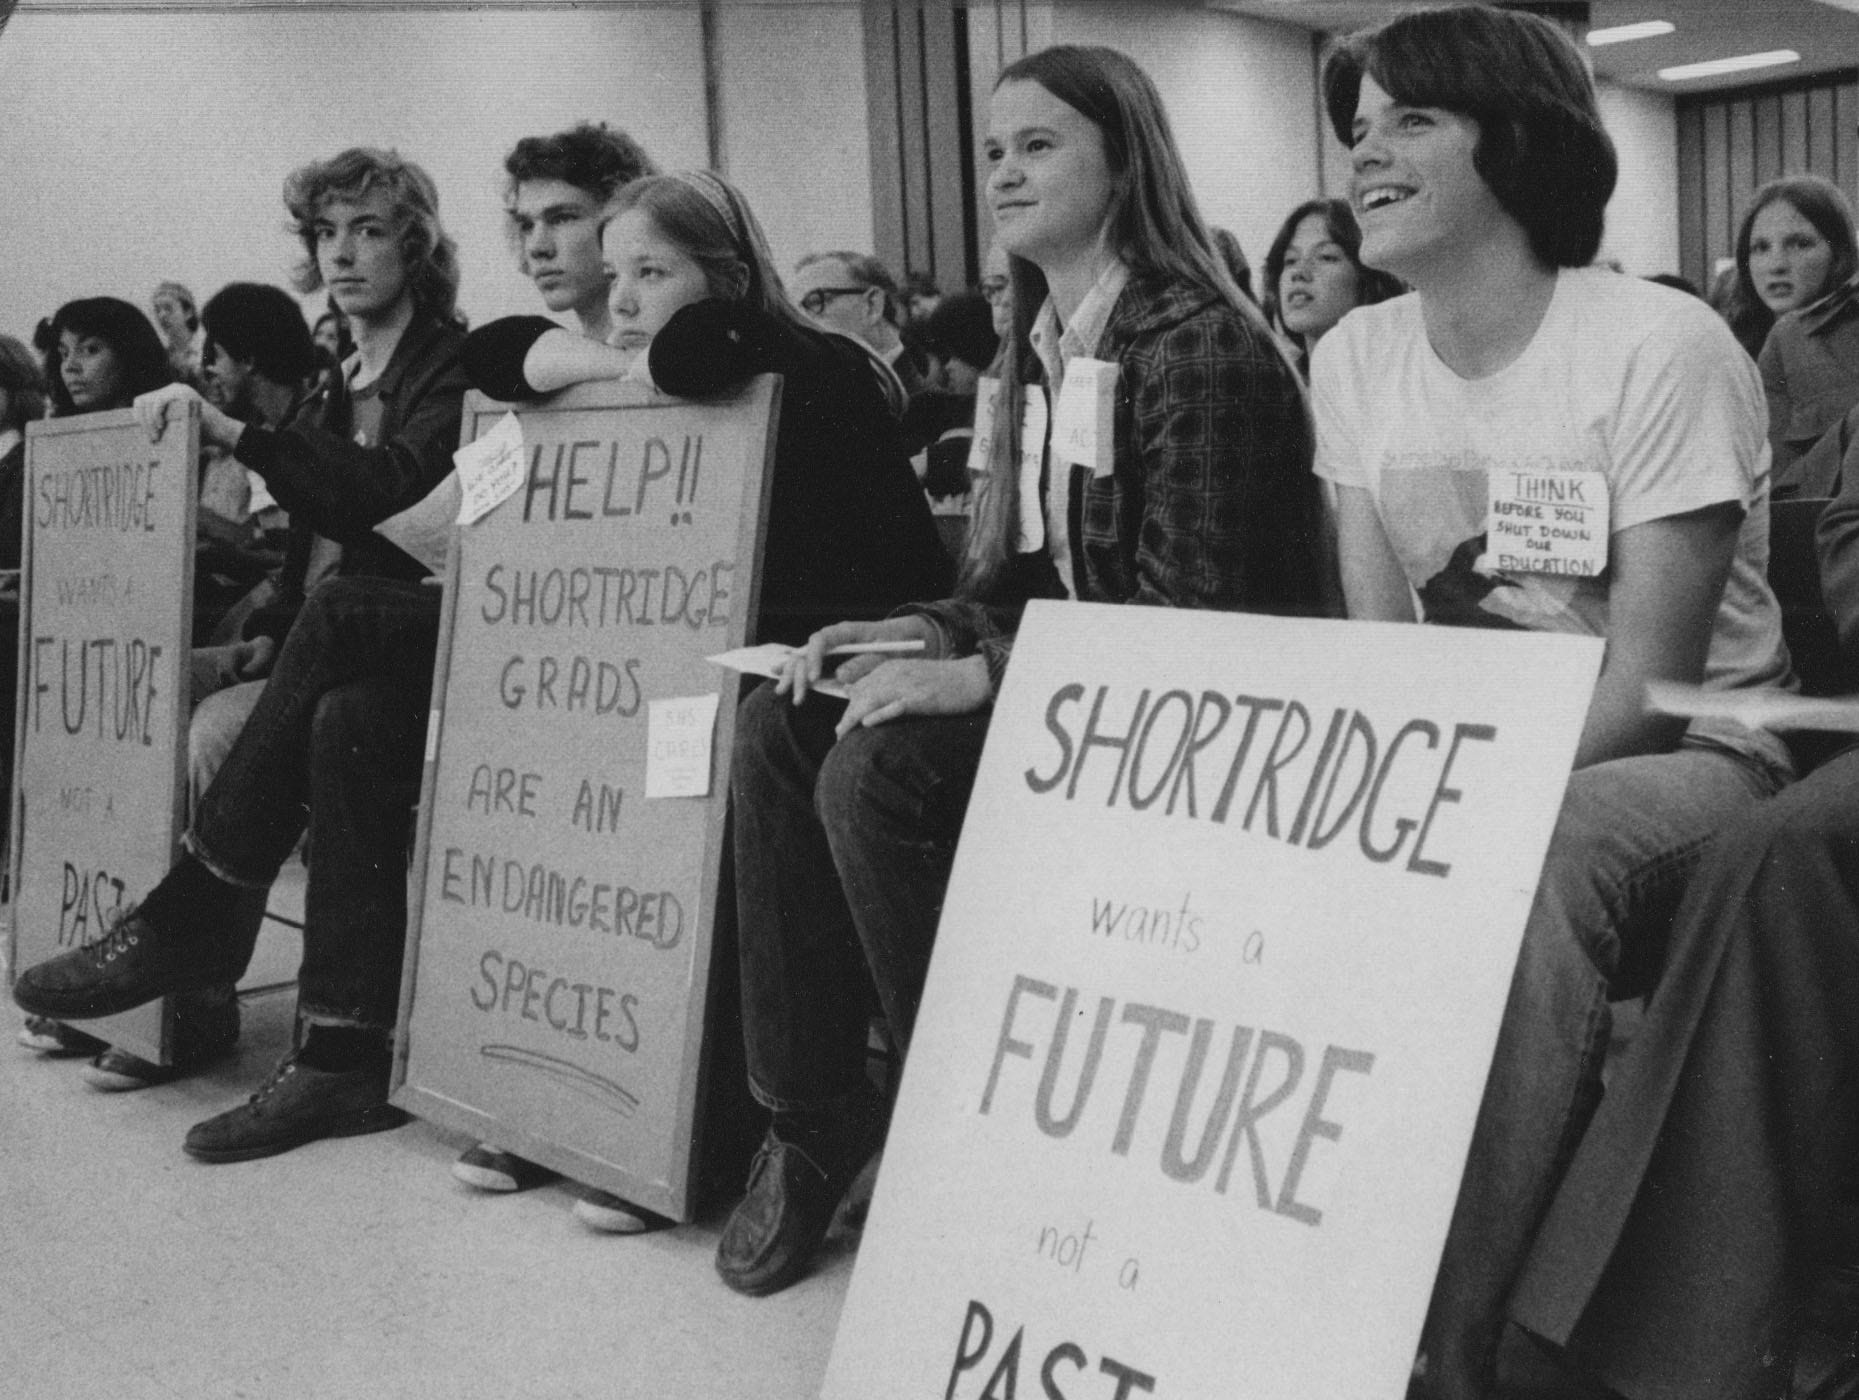 A crowd of Shortridge students urge the school board to keep the high school open in 1977. The board considered closing the school as part of deseregation.